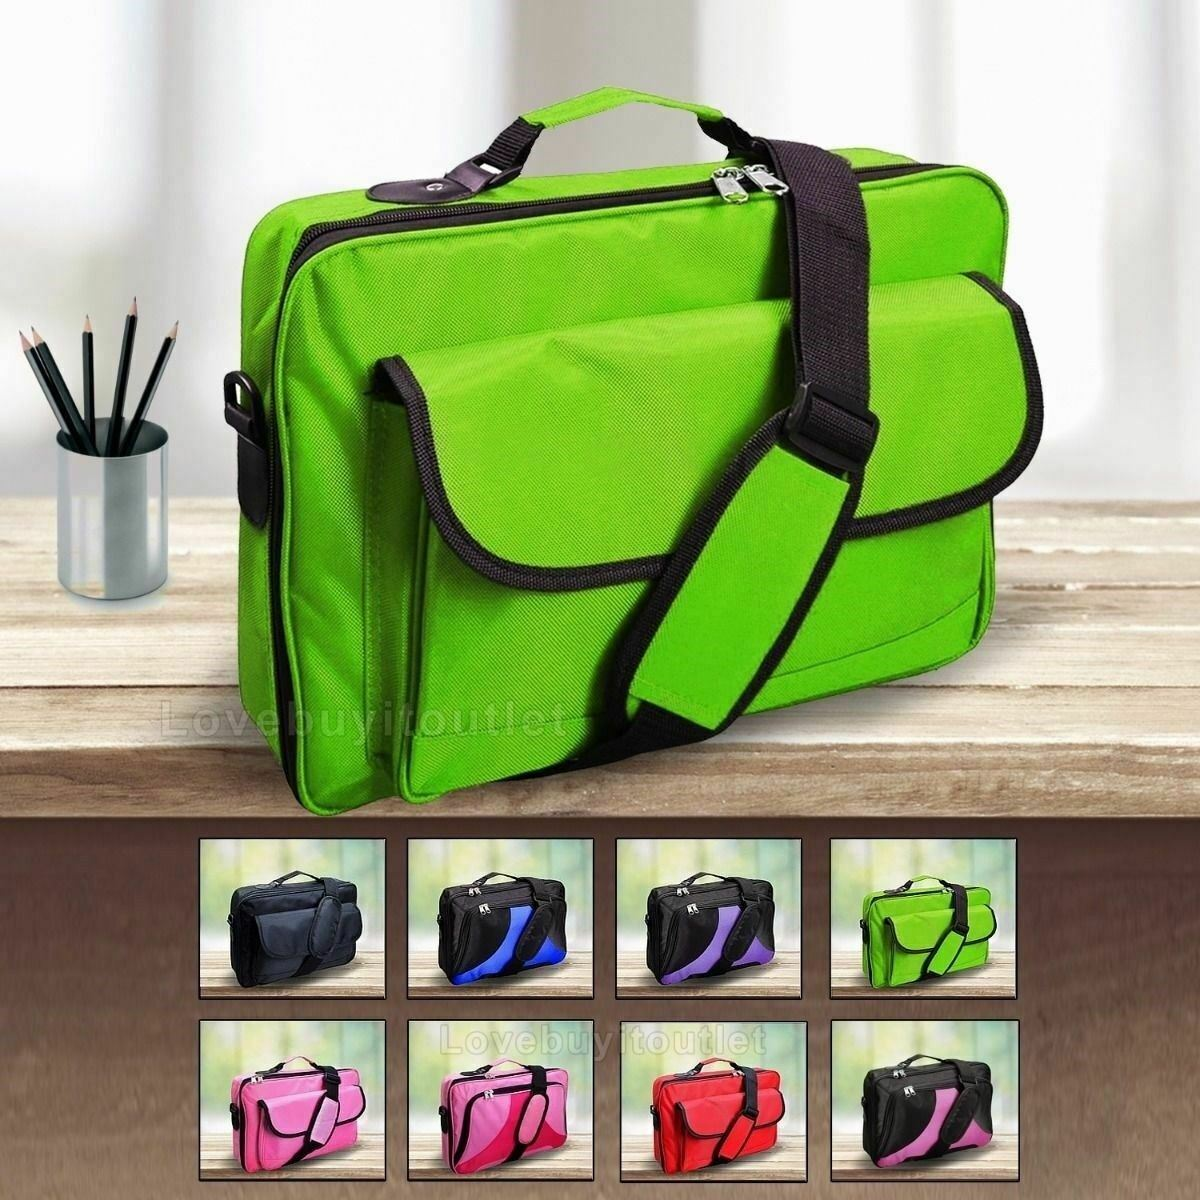 Color : H30 01, Size : 14 inch Laptop Sleeve Bag 11 12 13 14 15 15.6 Inch Notebook Bag Case for Dell Asus Lenovo HP Acer Computer Bag for MacBook Air Pro 13 15 Practical Computer Bag Beautiful